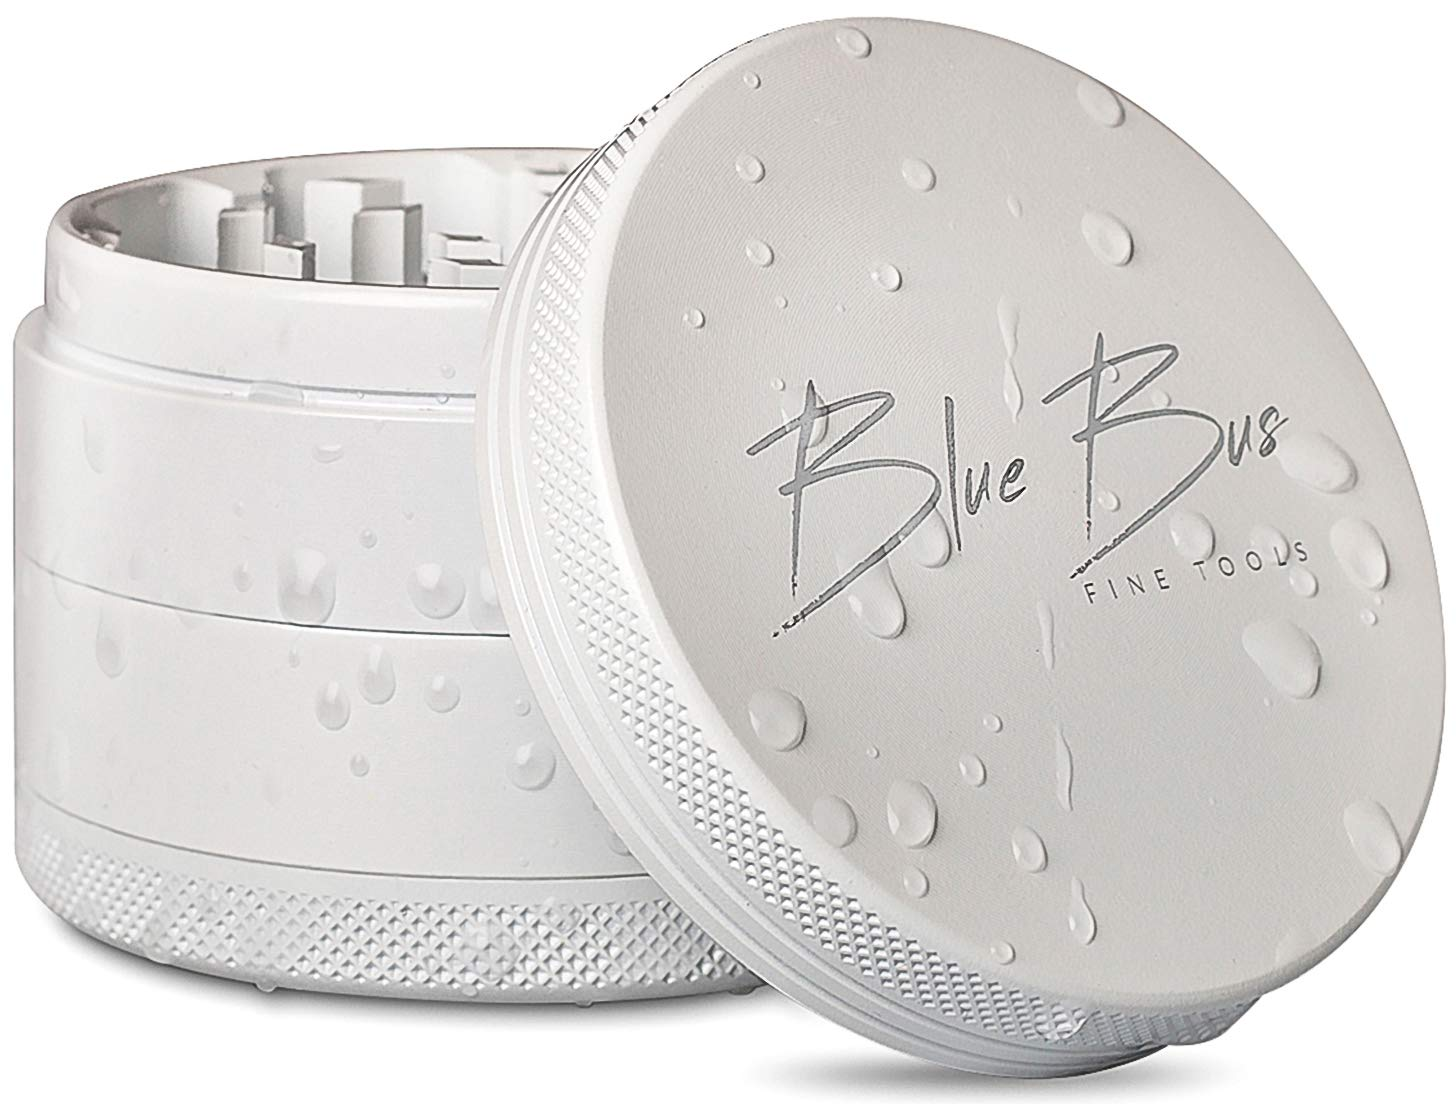 "#1 NON-STICK Best Ceramic Herb Grinder, Large 2.5"" inch 4-Piece, White color, PREMIUM design by BlueBus fine tools 61REQbeOhhL"